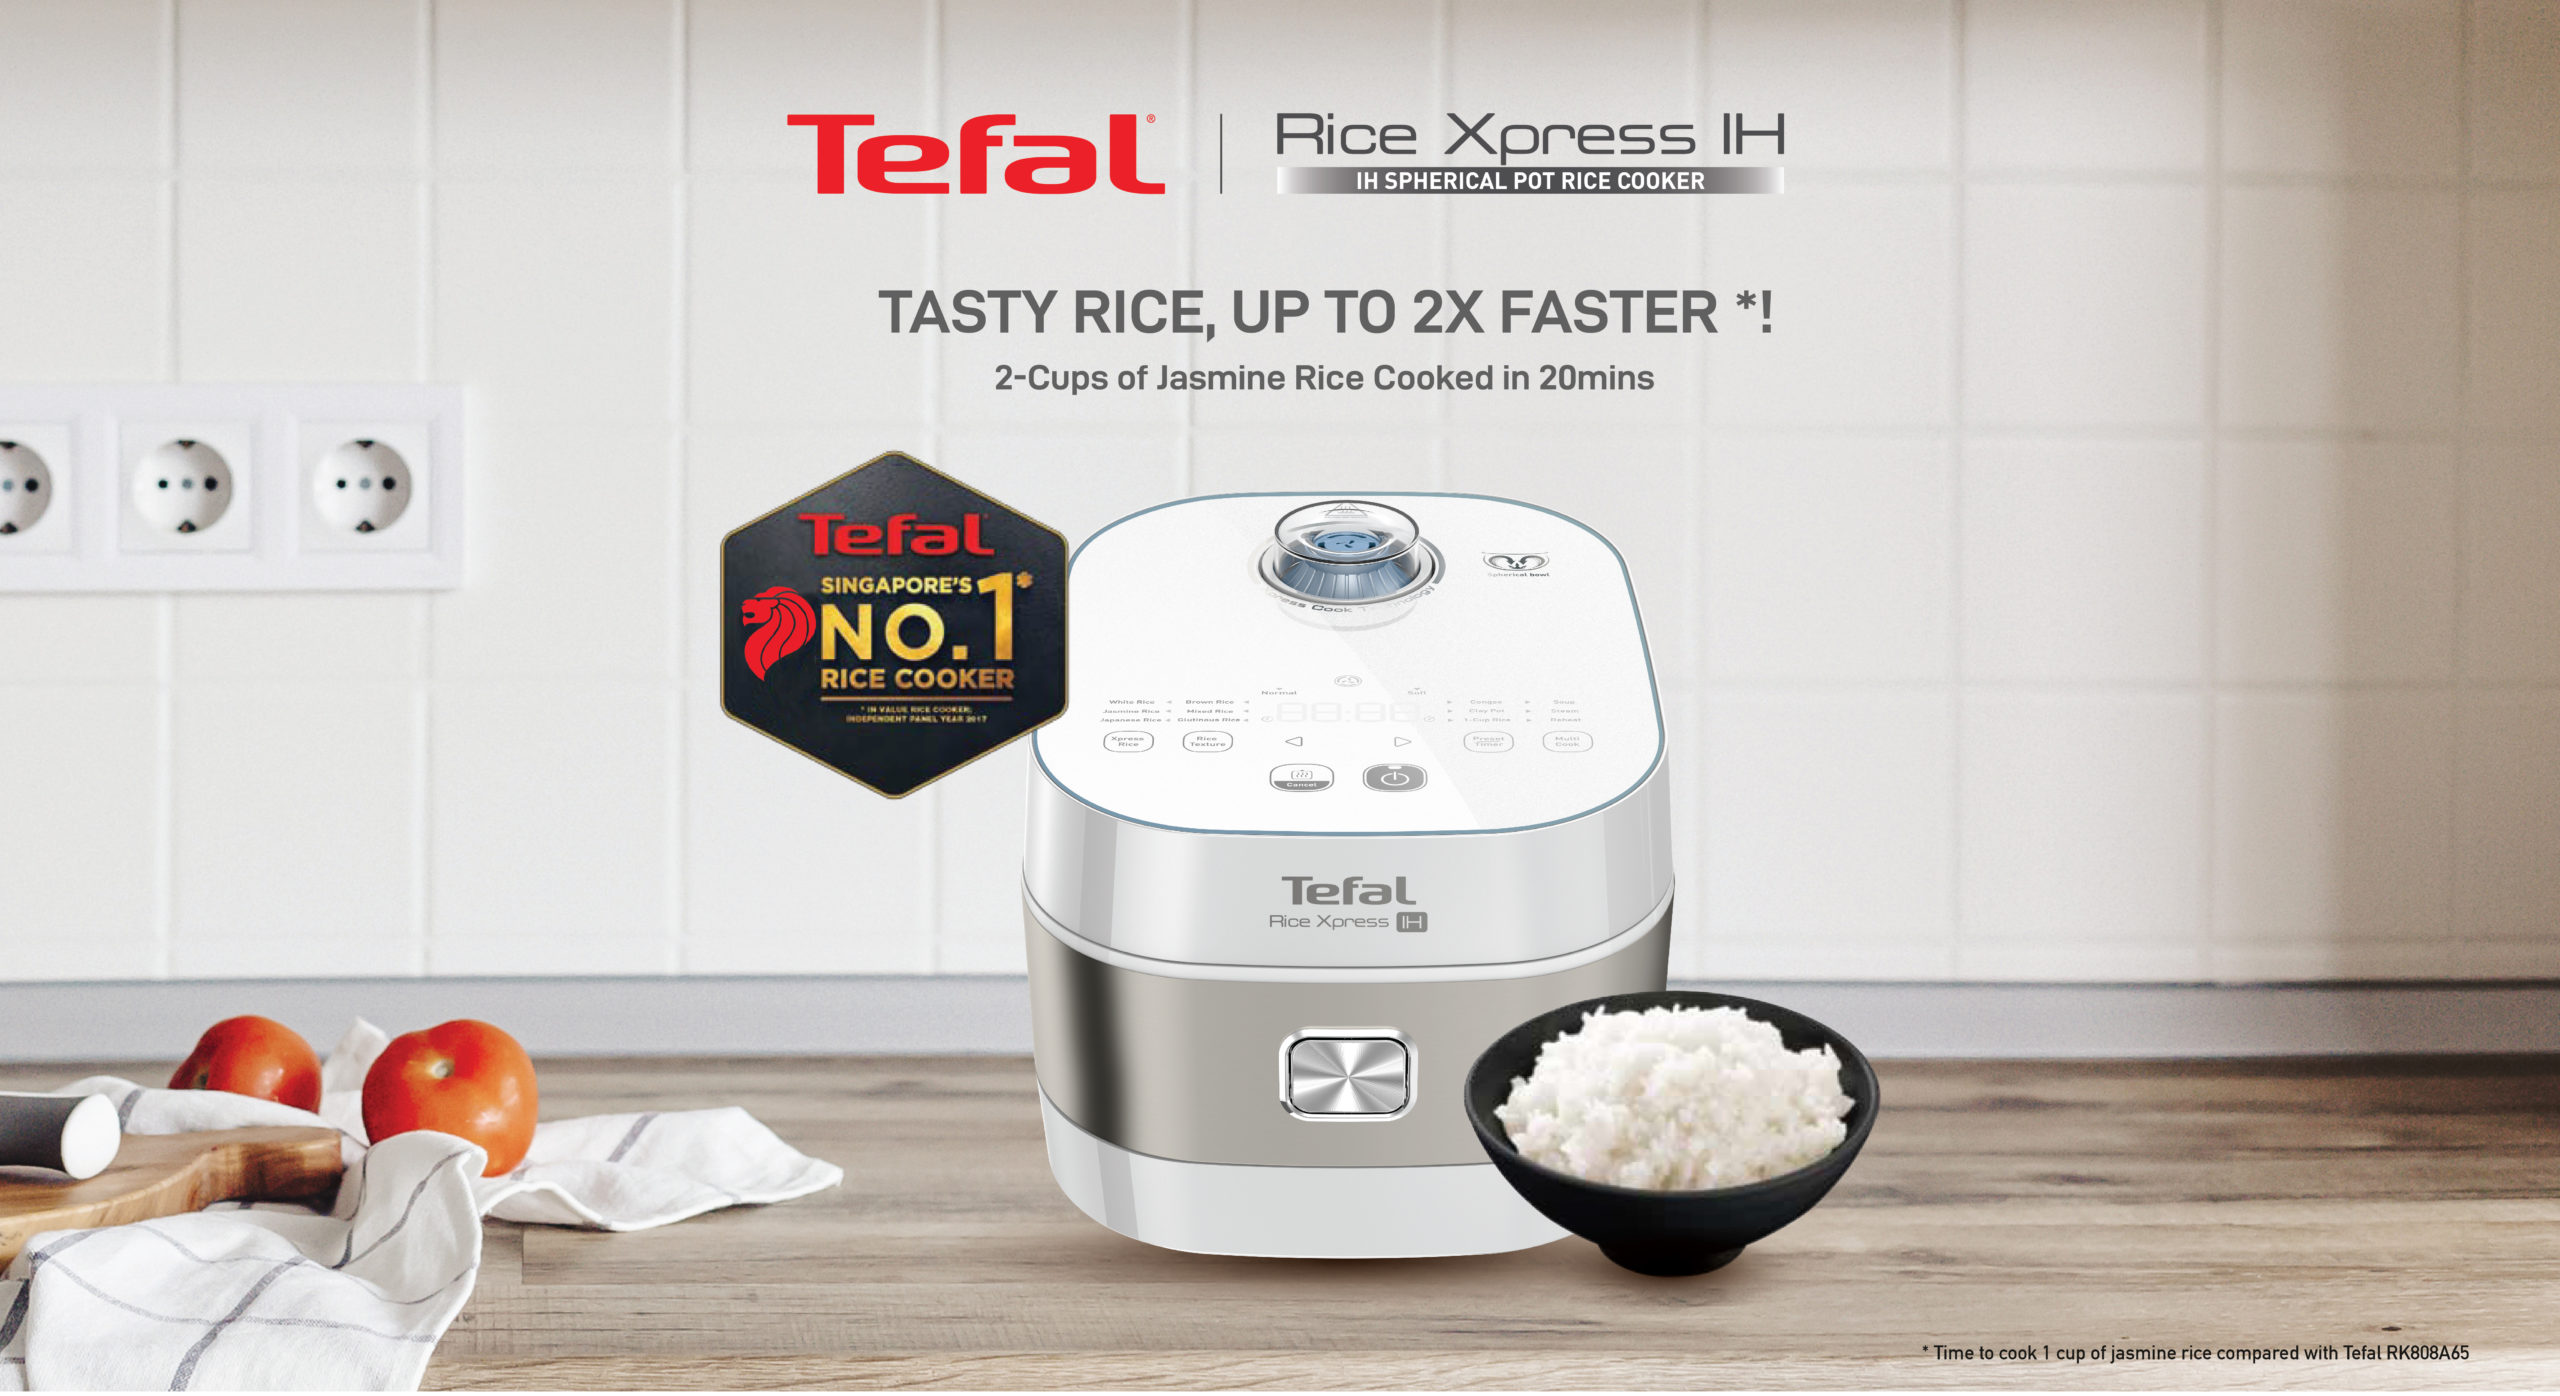 4 Simple Rice Cooker Recipes with Tefal Xpress IH Rice Cooker